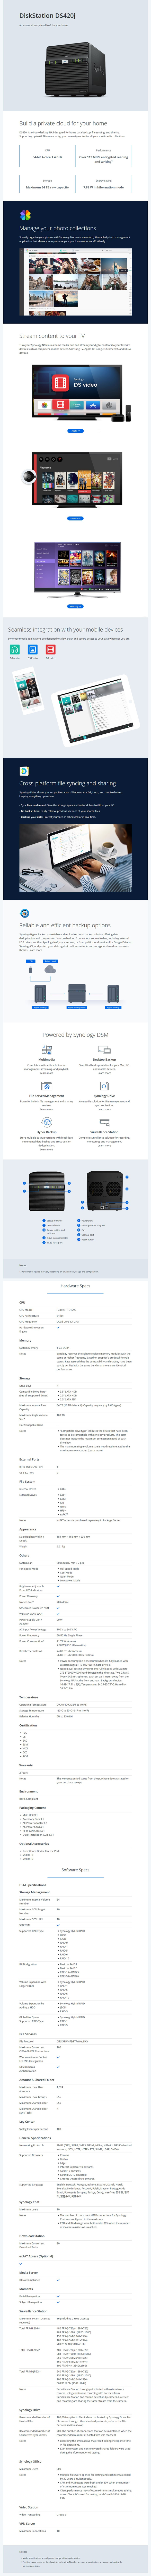 A large marketing image providing additional information about the product Synology Diskstation DS420J Quad Core 1.4Ghz 1GB 4 Bay NAS - Additional alt info not provided